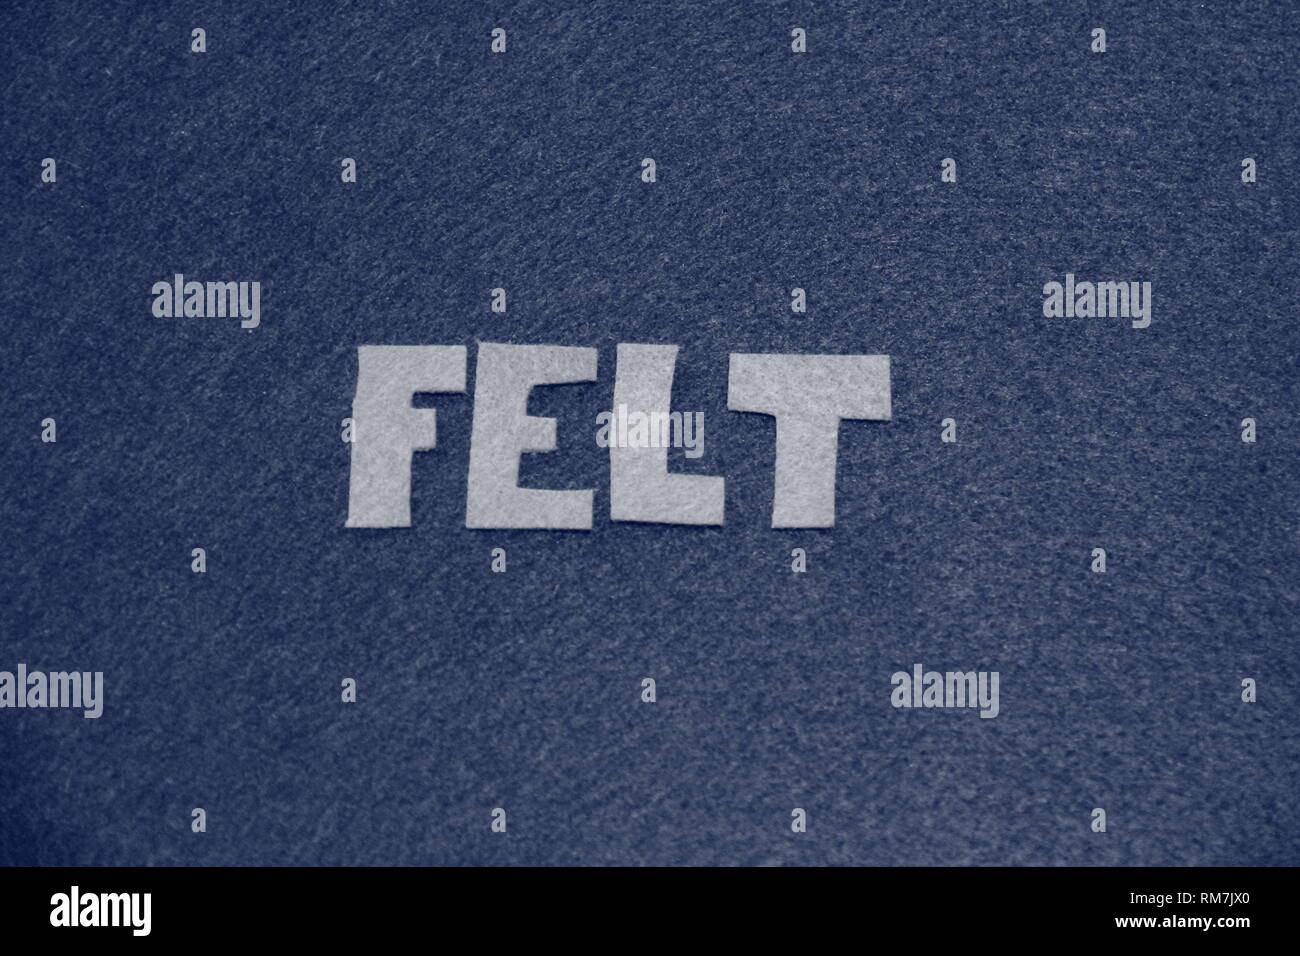 Self referencing felt letters - Stock Image